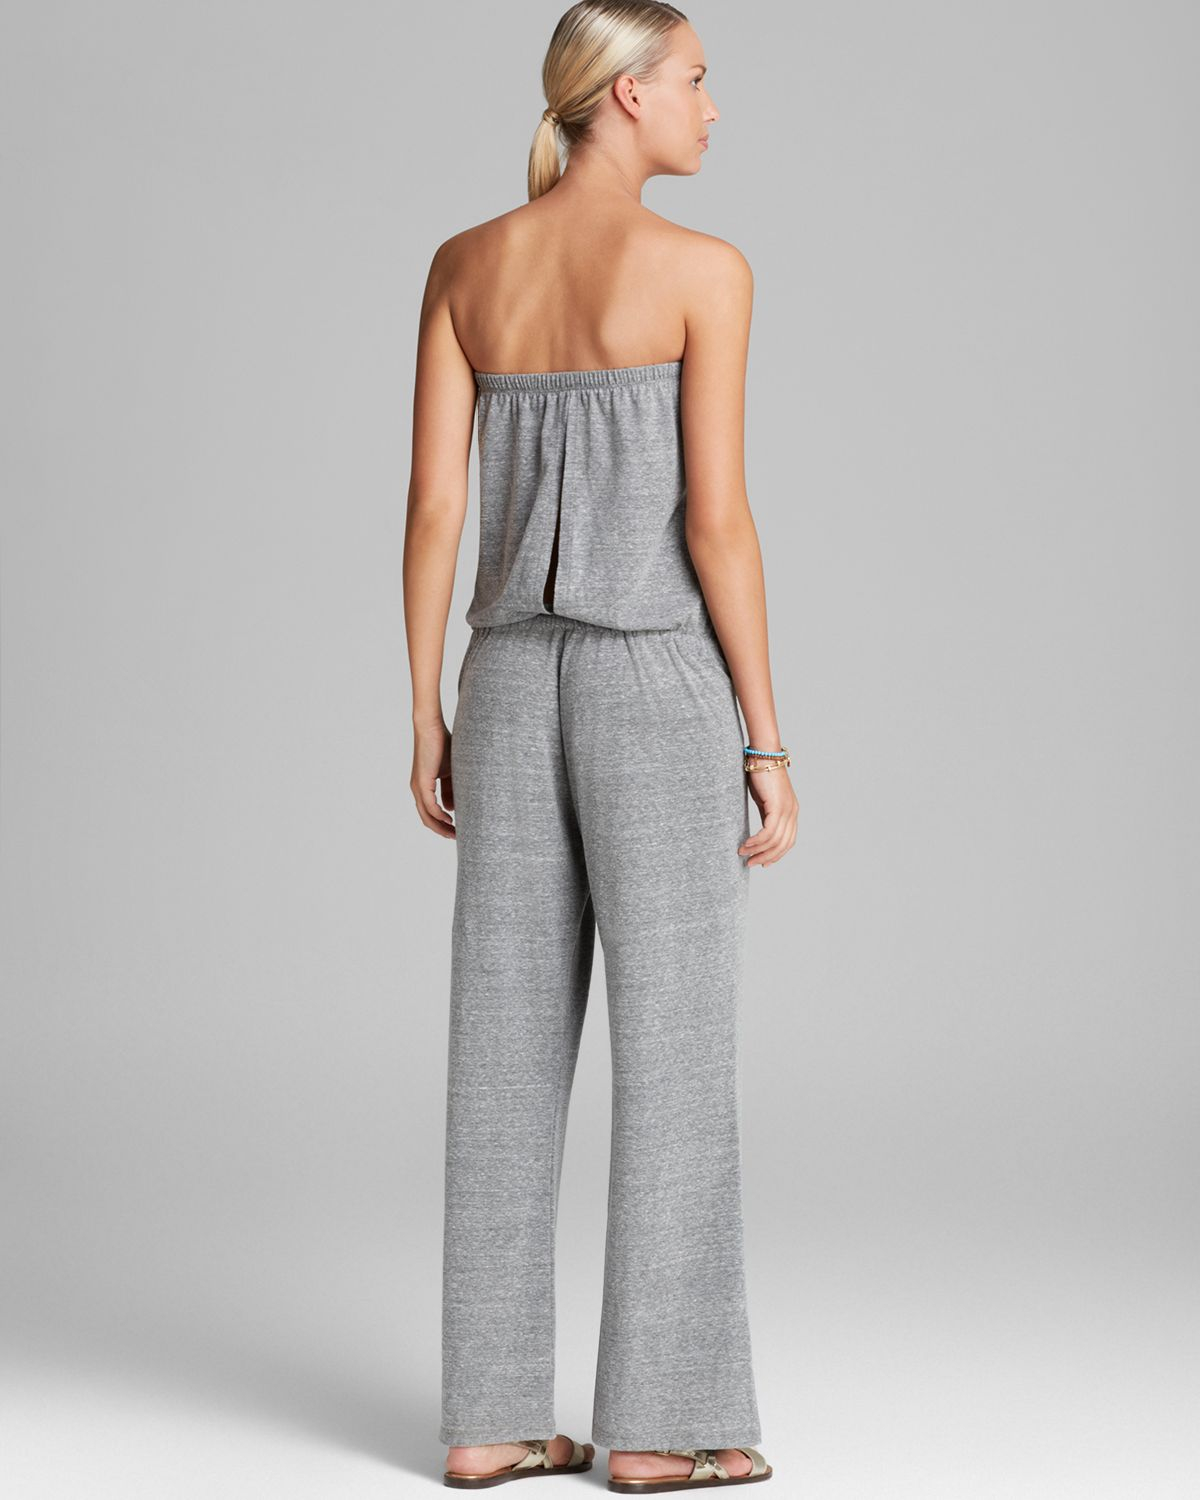 dbf505ad2ec64 Lyst - Lucky Brand French Tapestry Jumpsuit Swim Cover Up in Gray